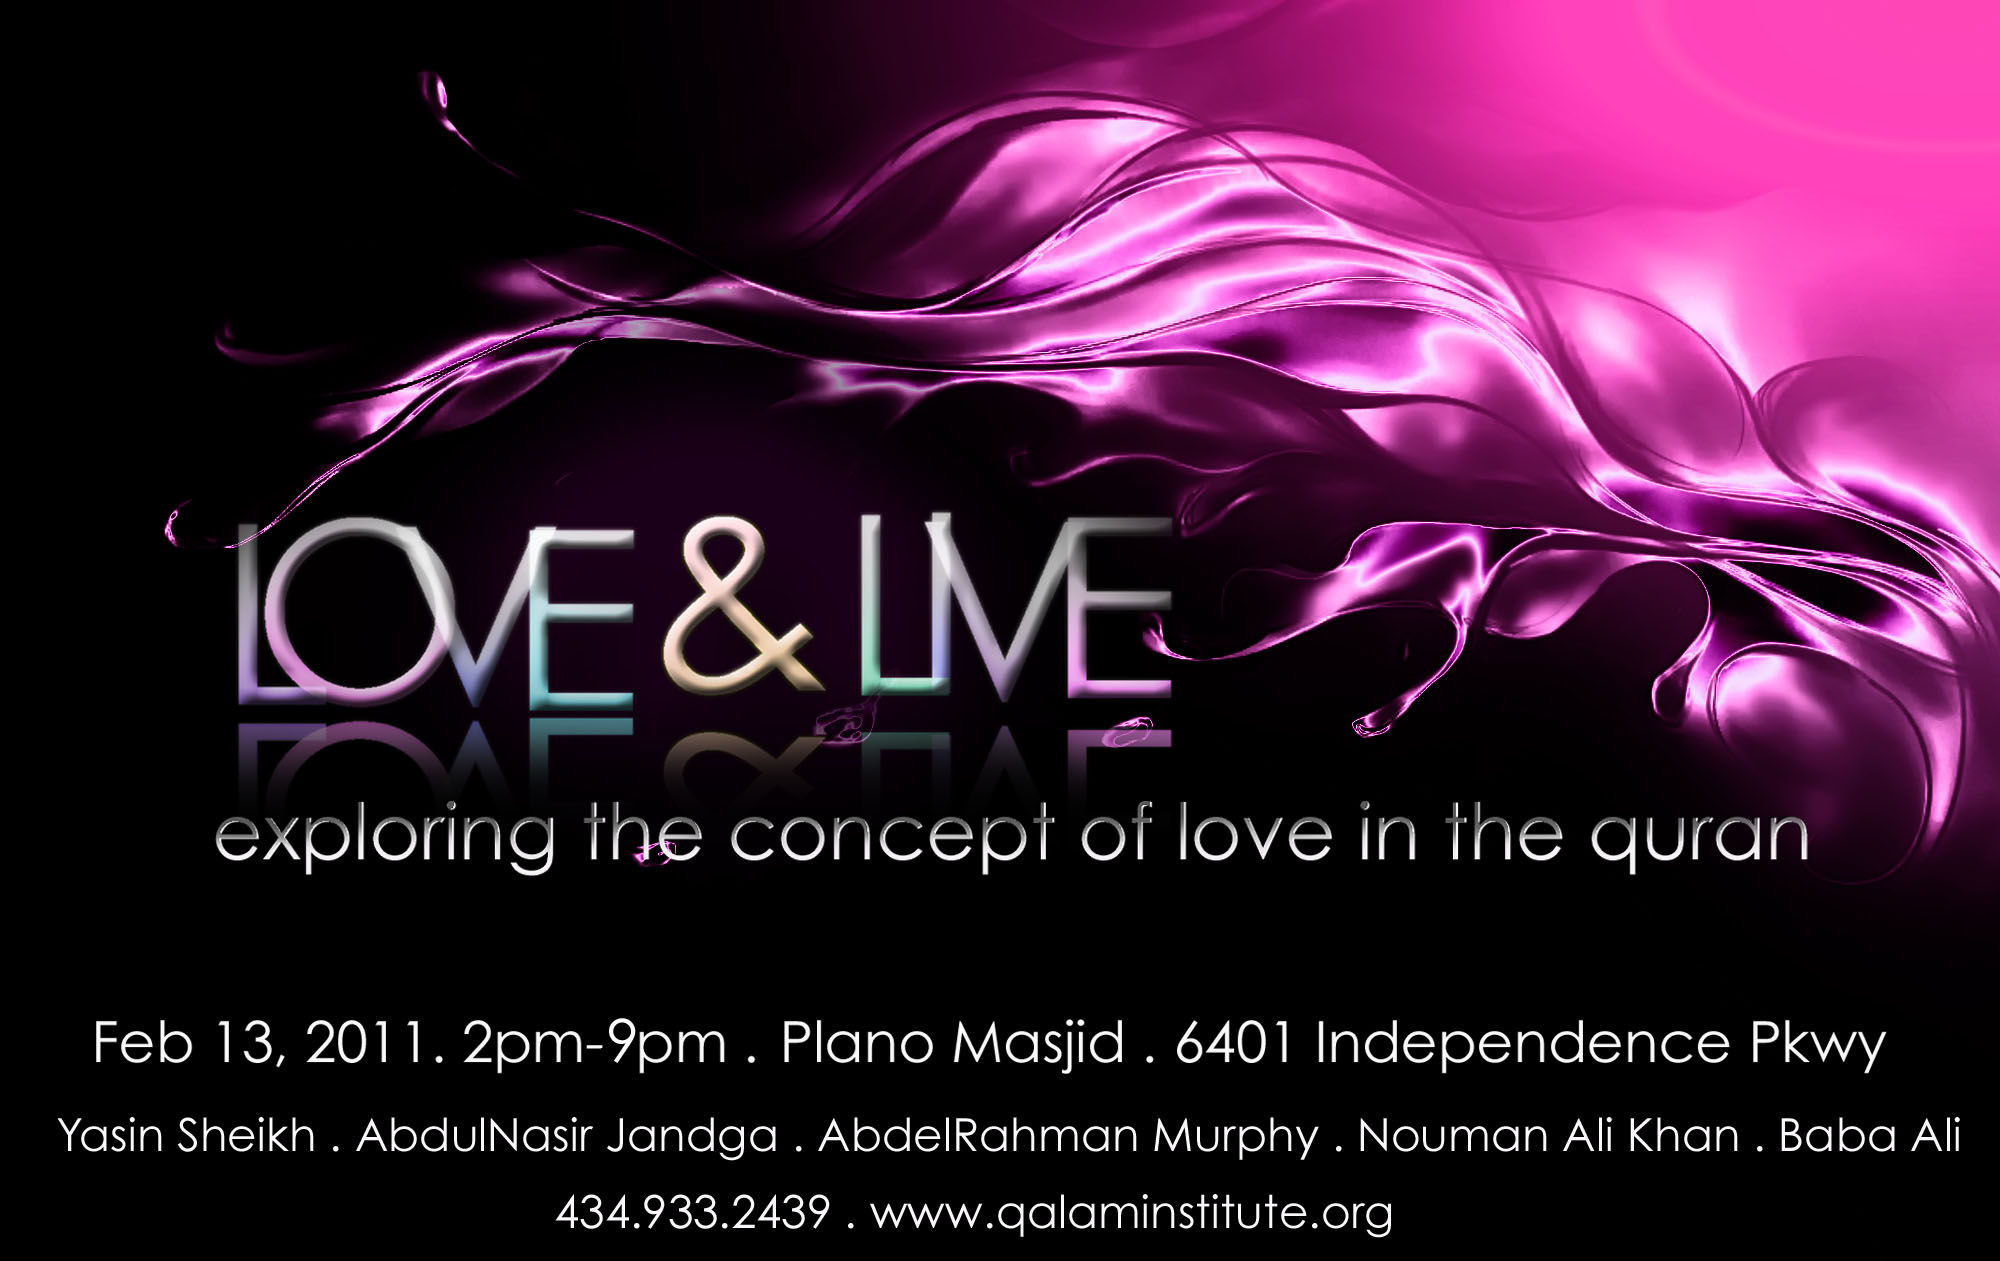 Conference: Love & Live Feb 13th, 2011